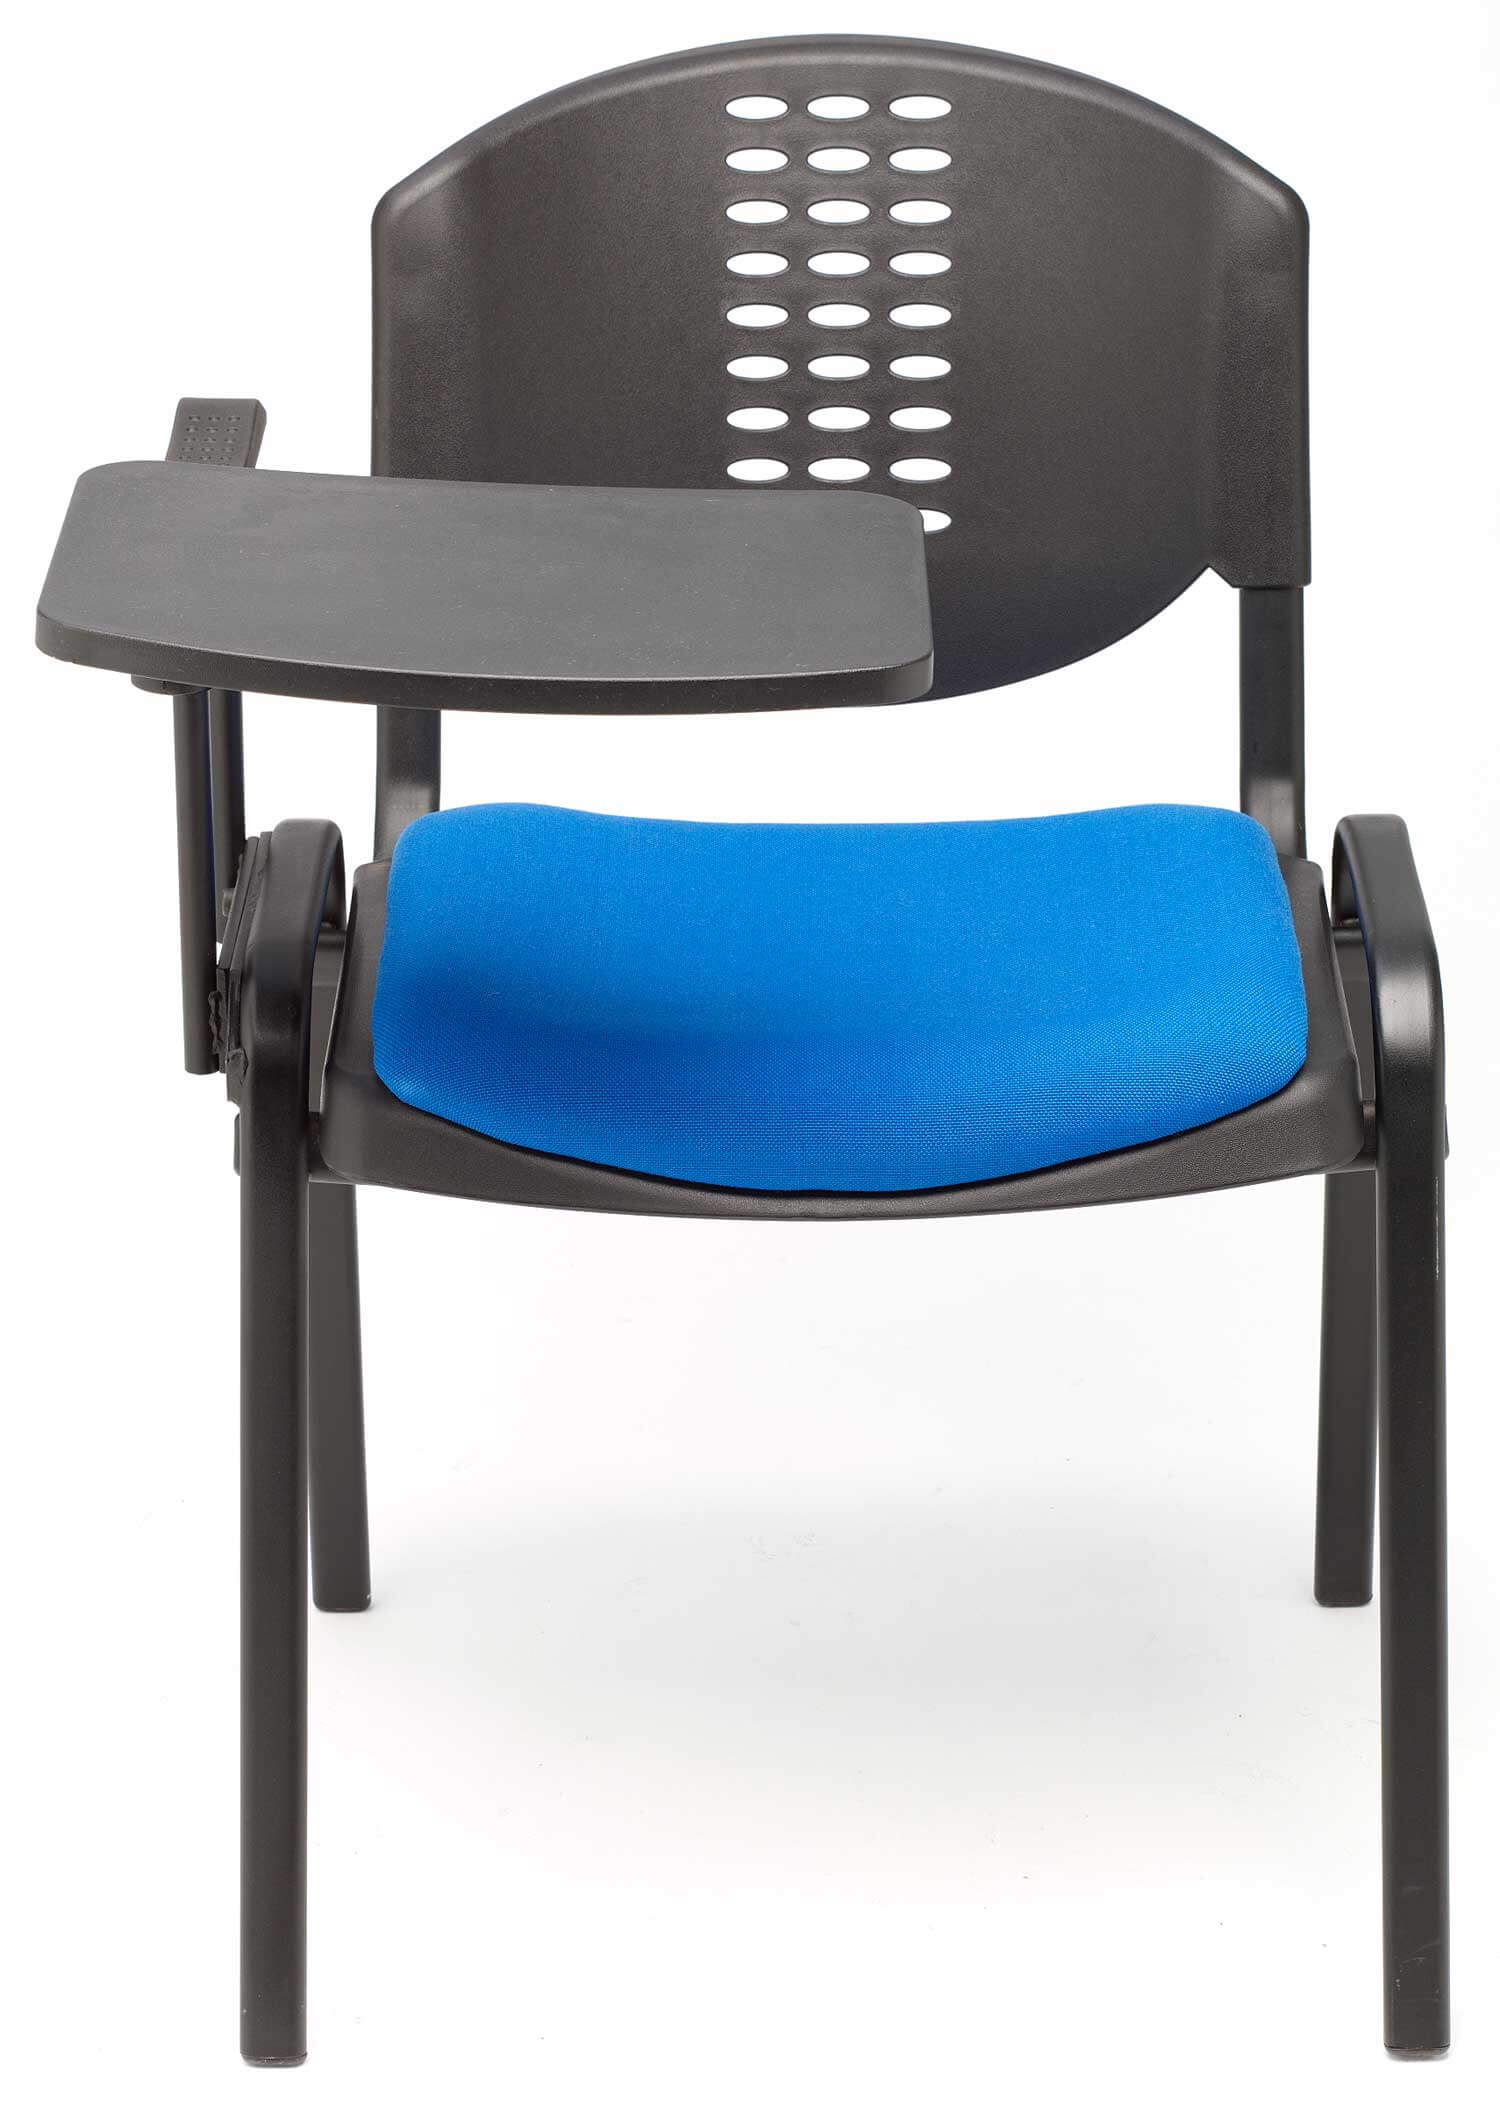 100 Classroom Furniture Manufacturers Bangalore Used Preschool Tables And Chairs Used